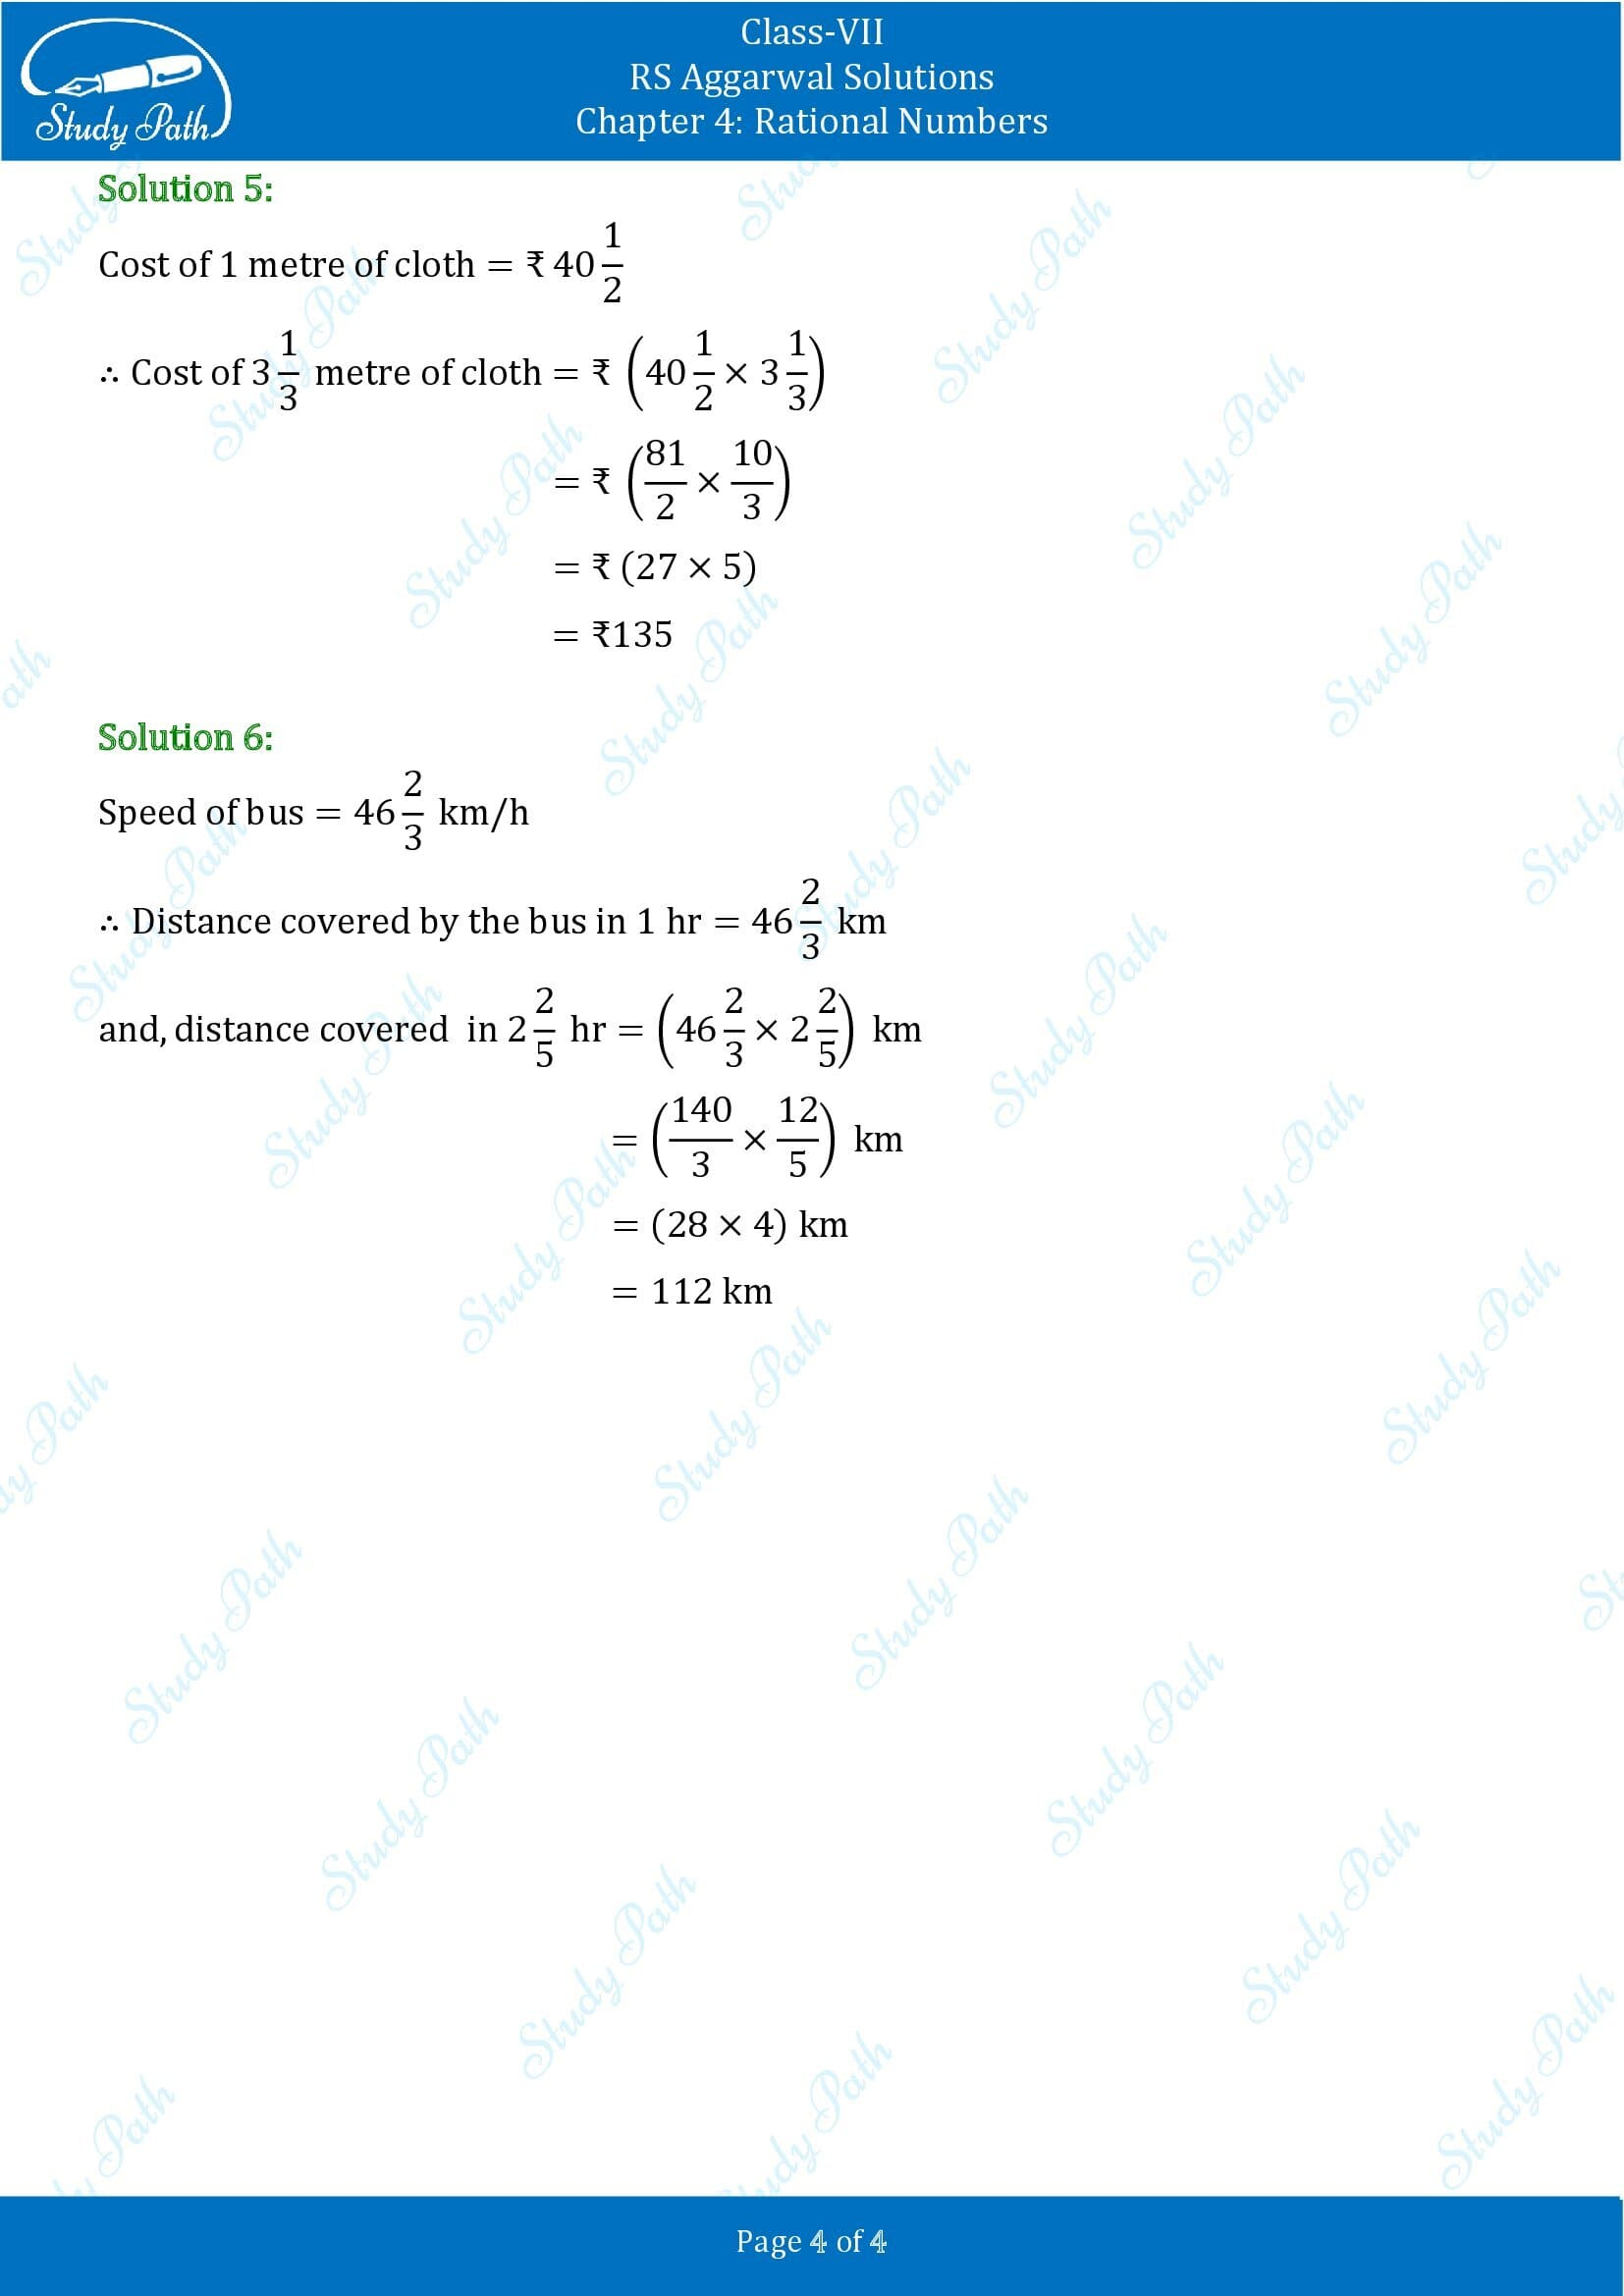 RS Aggarwal Solutions Class 7 Chapter 4 Rational Numbers Exercise 4E 00004